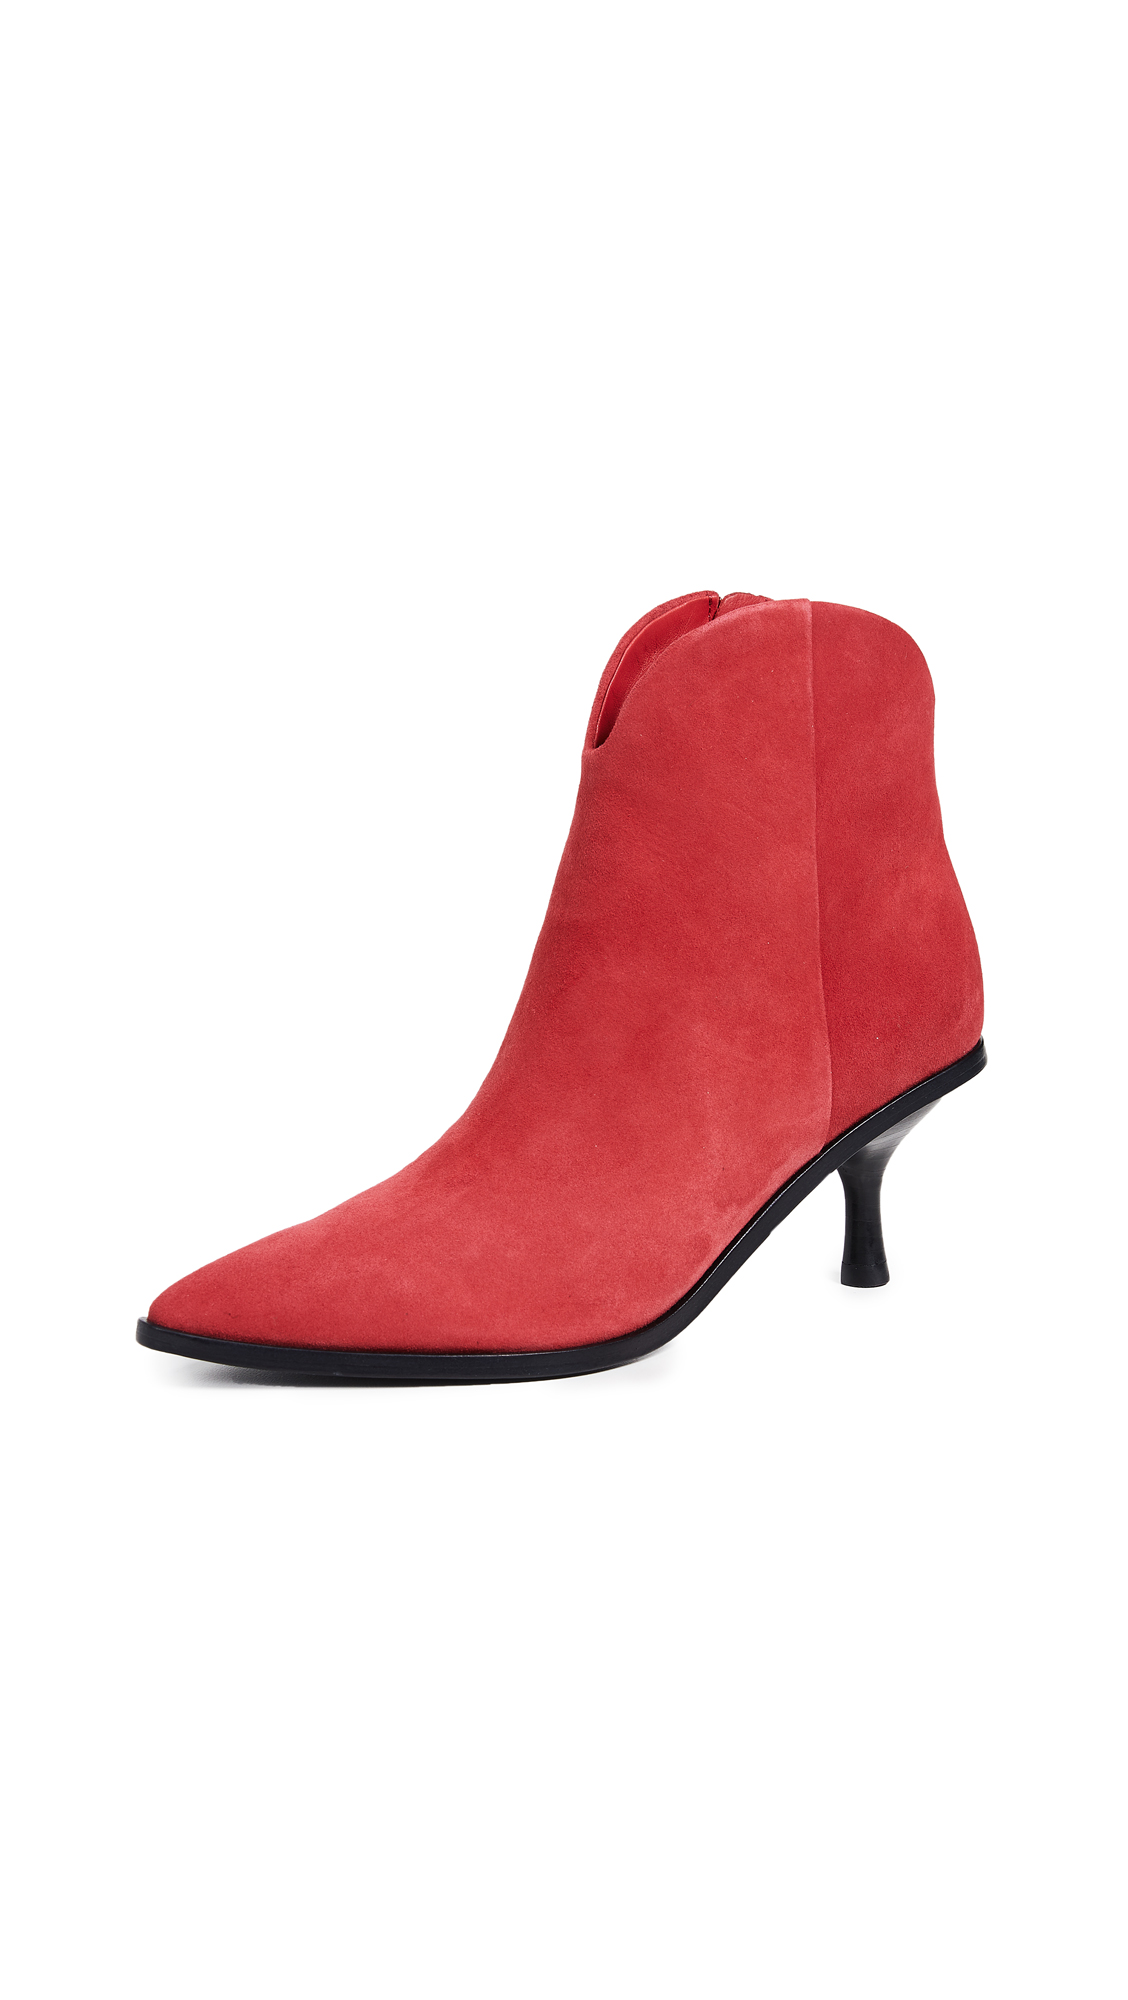 Sigerson Morrison Hayliegh Point Toe Booties - Red